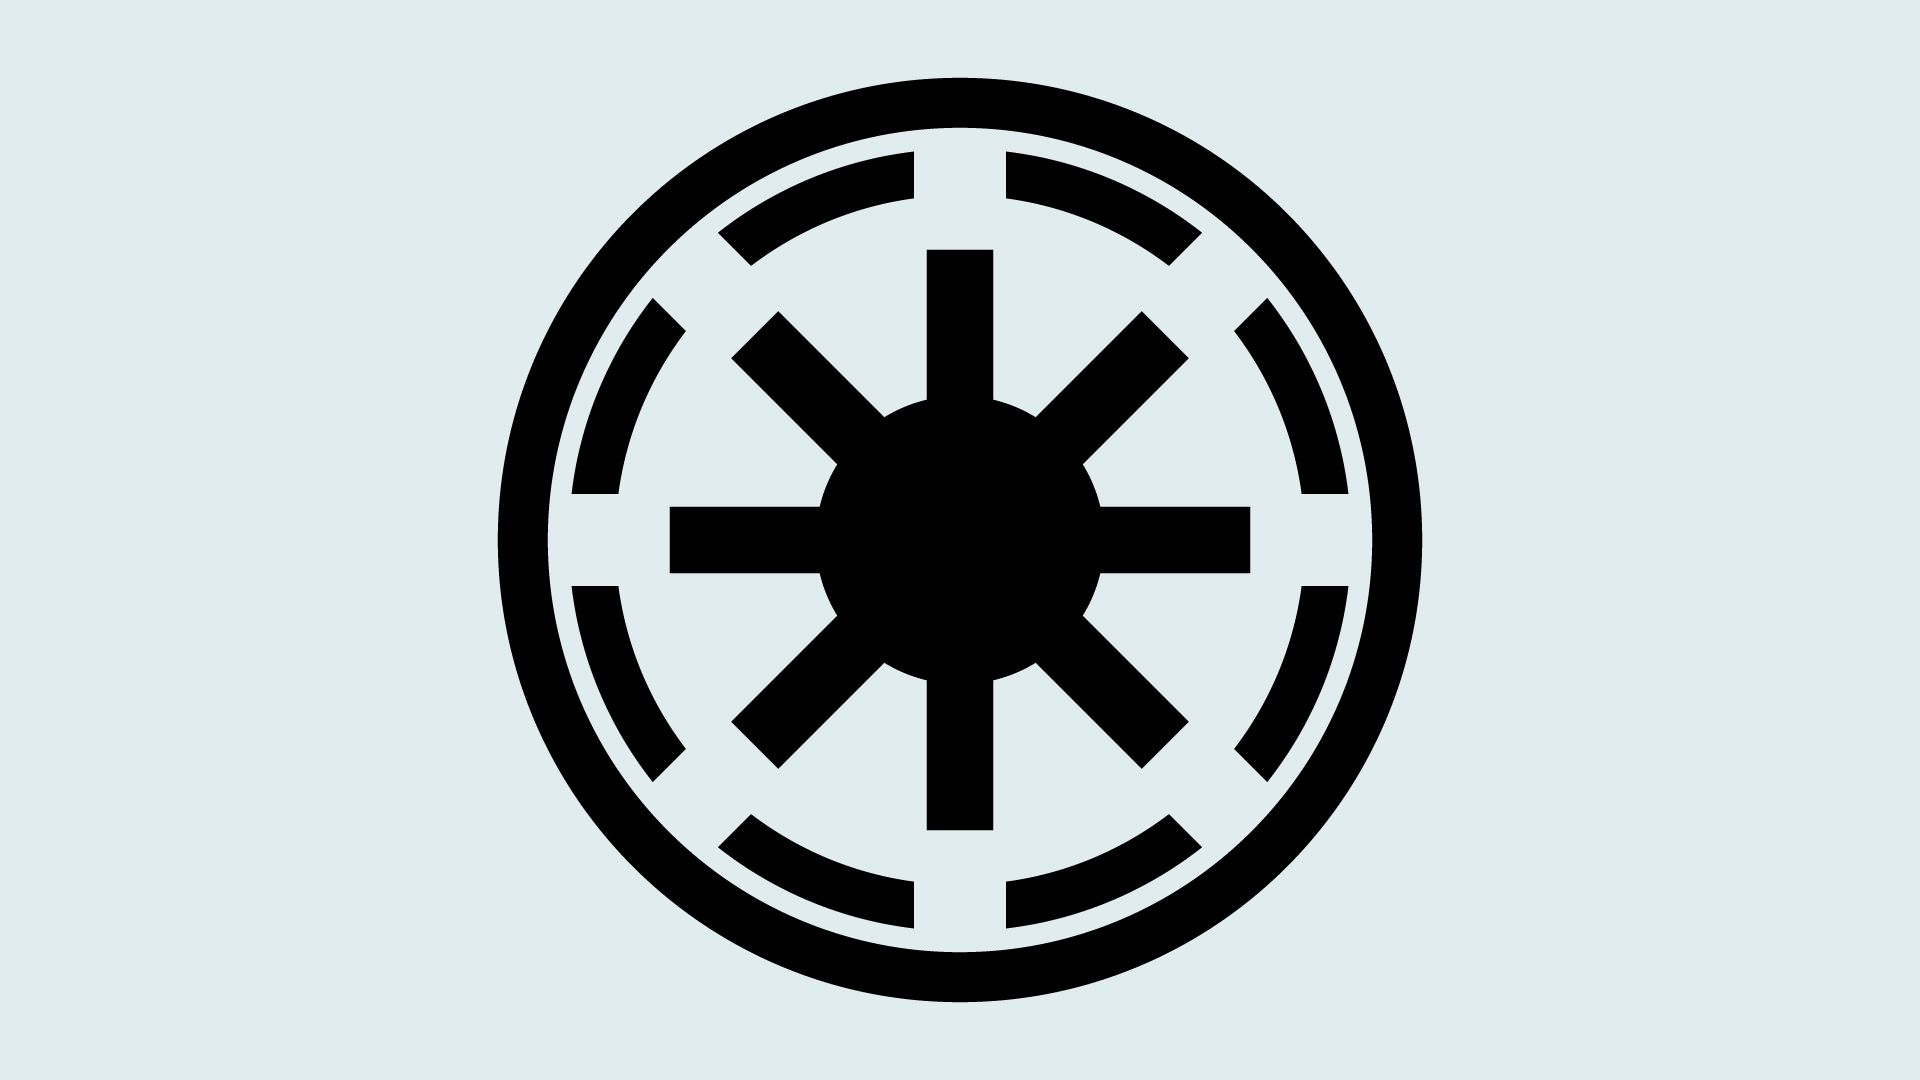 star wars the republic logo wwwimgkidcom the image